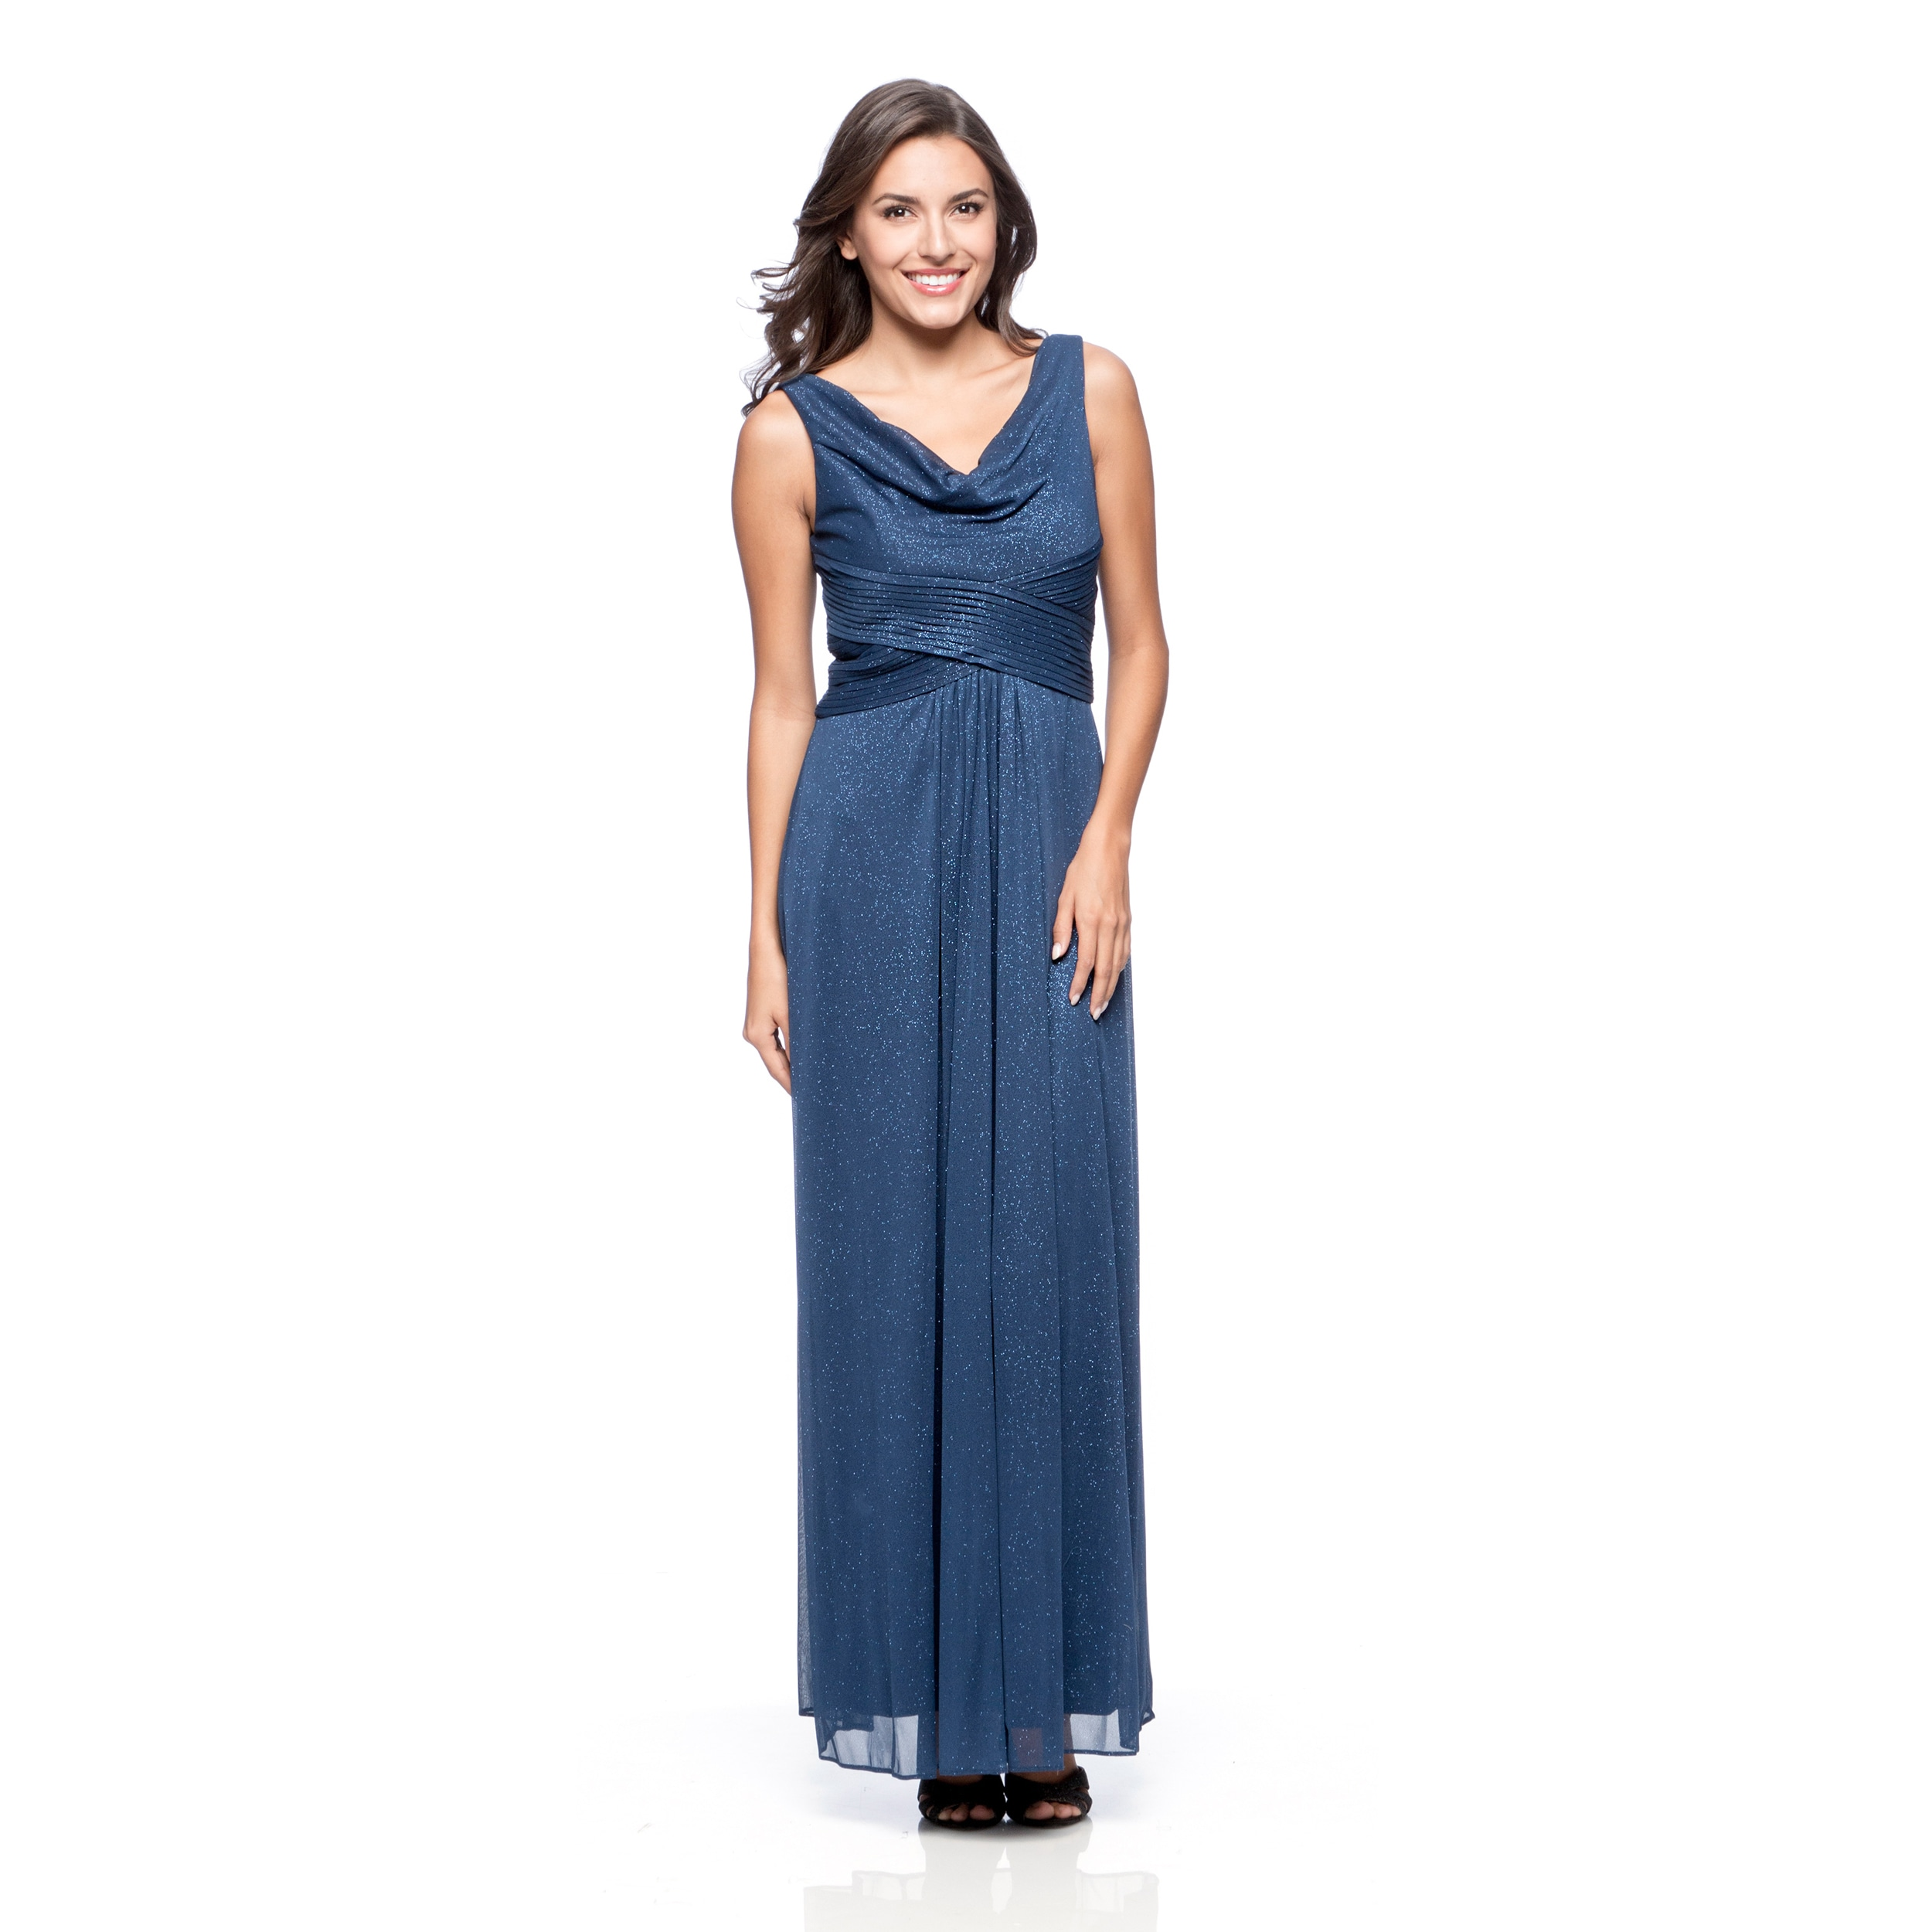 Shop Alex Evenings Women\'s Electric Blue Glitter Mesh Evening Gown ...